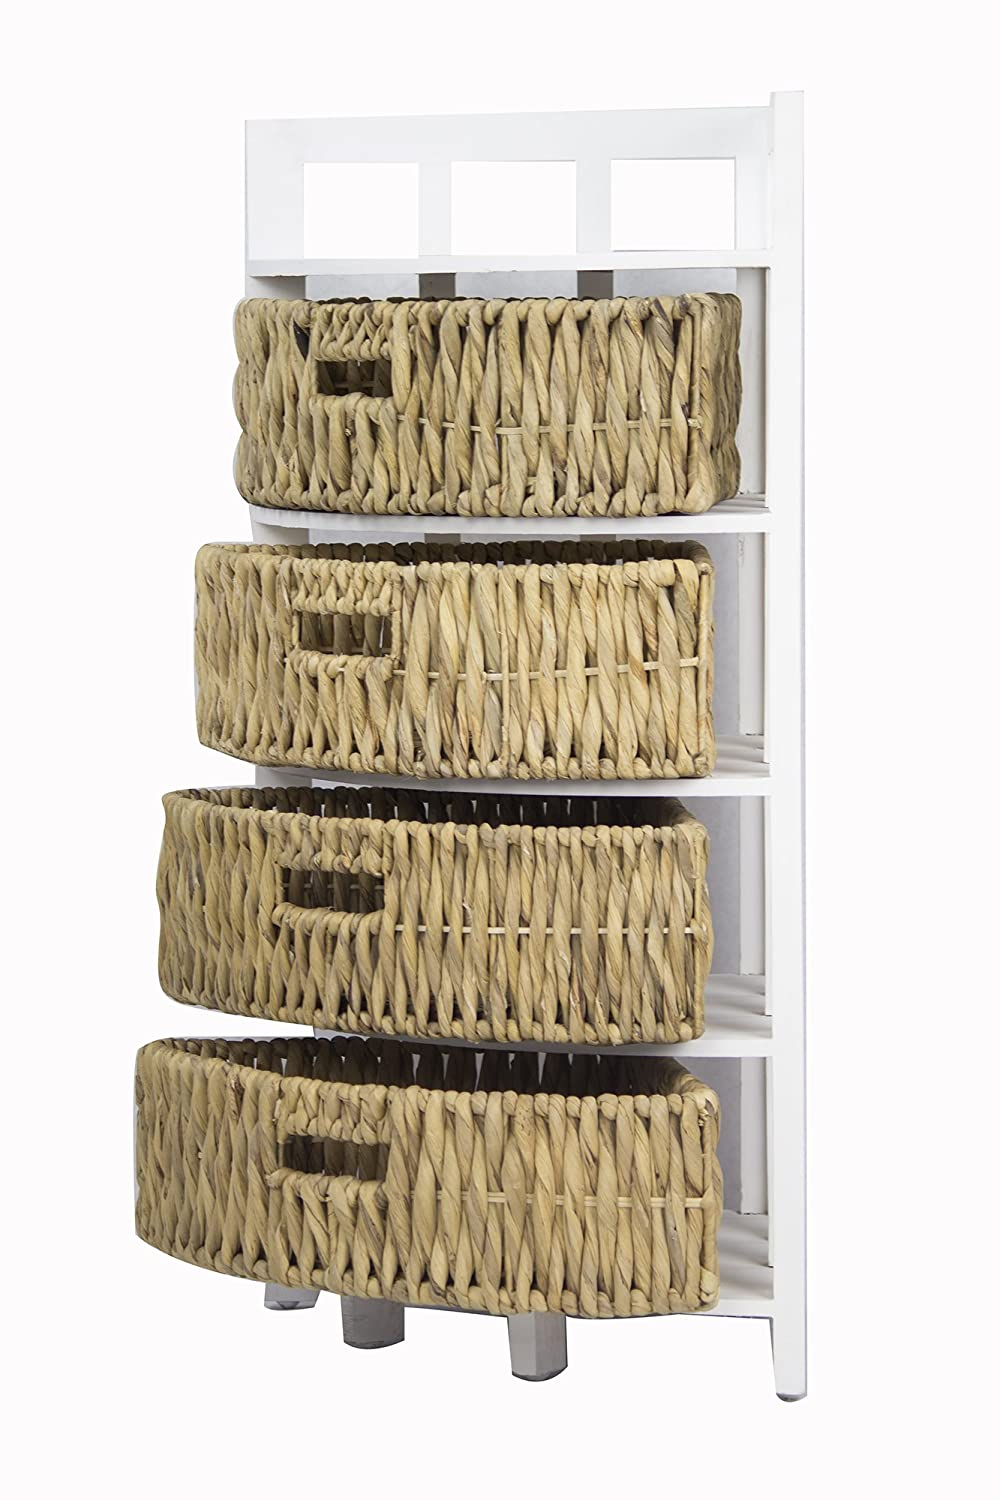 Heather Ann Creations Vale Collection Bohemian Corner Storage Cabinet With Four Removable Basket Drawers, Wicker Finish, White/Wicker